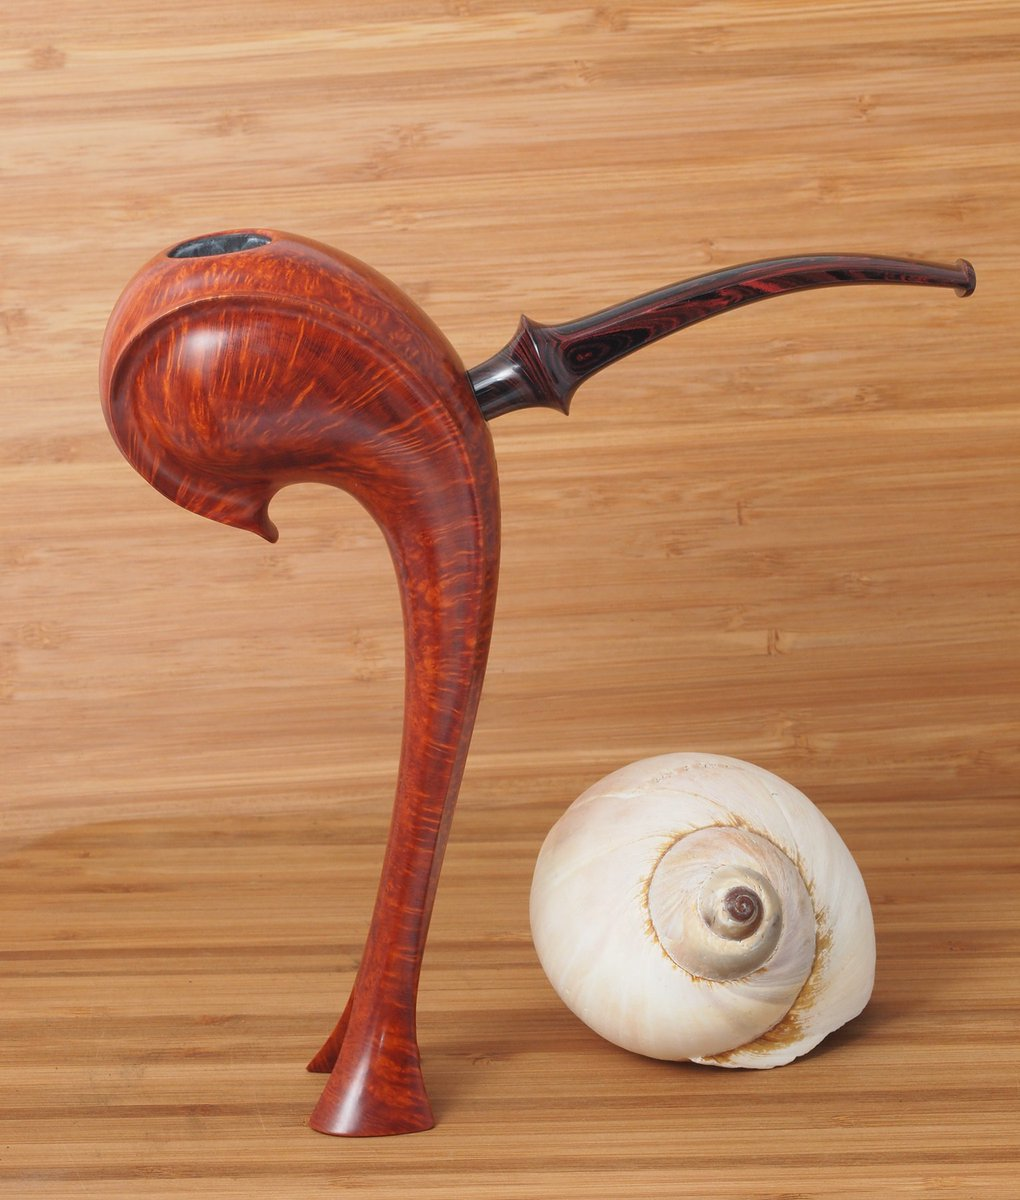 Here's a pretty unusual pipe, made by Teddy Knudsen